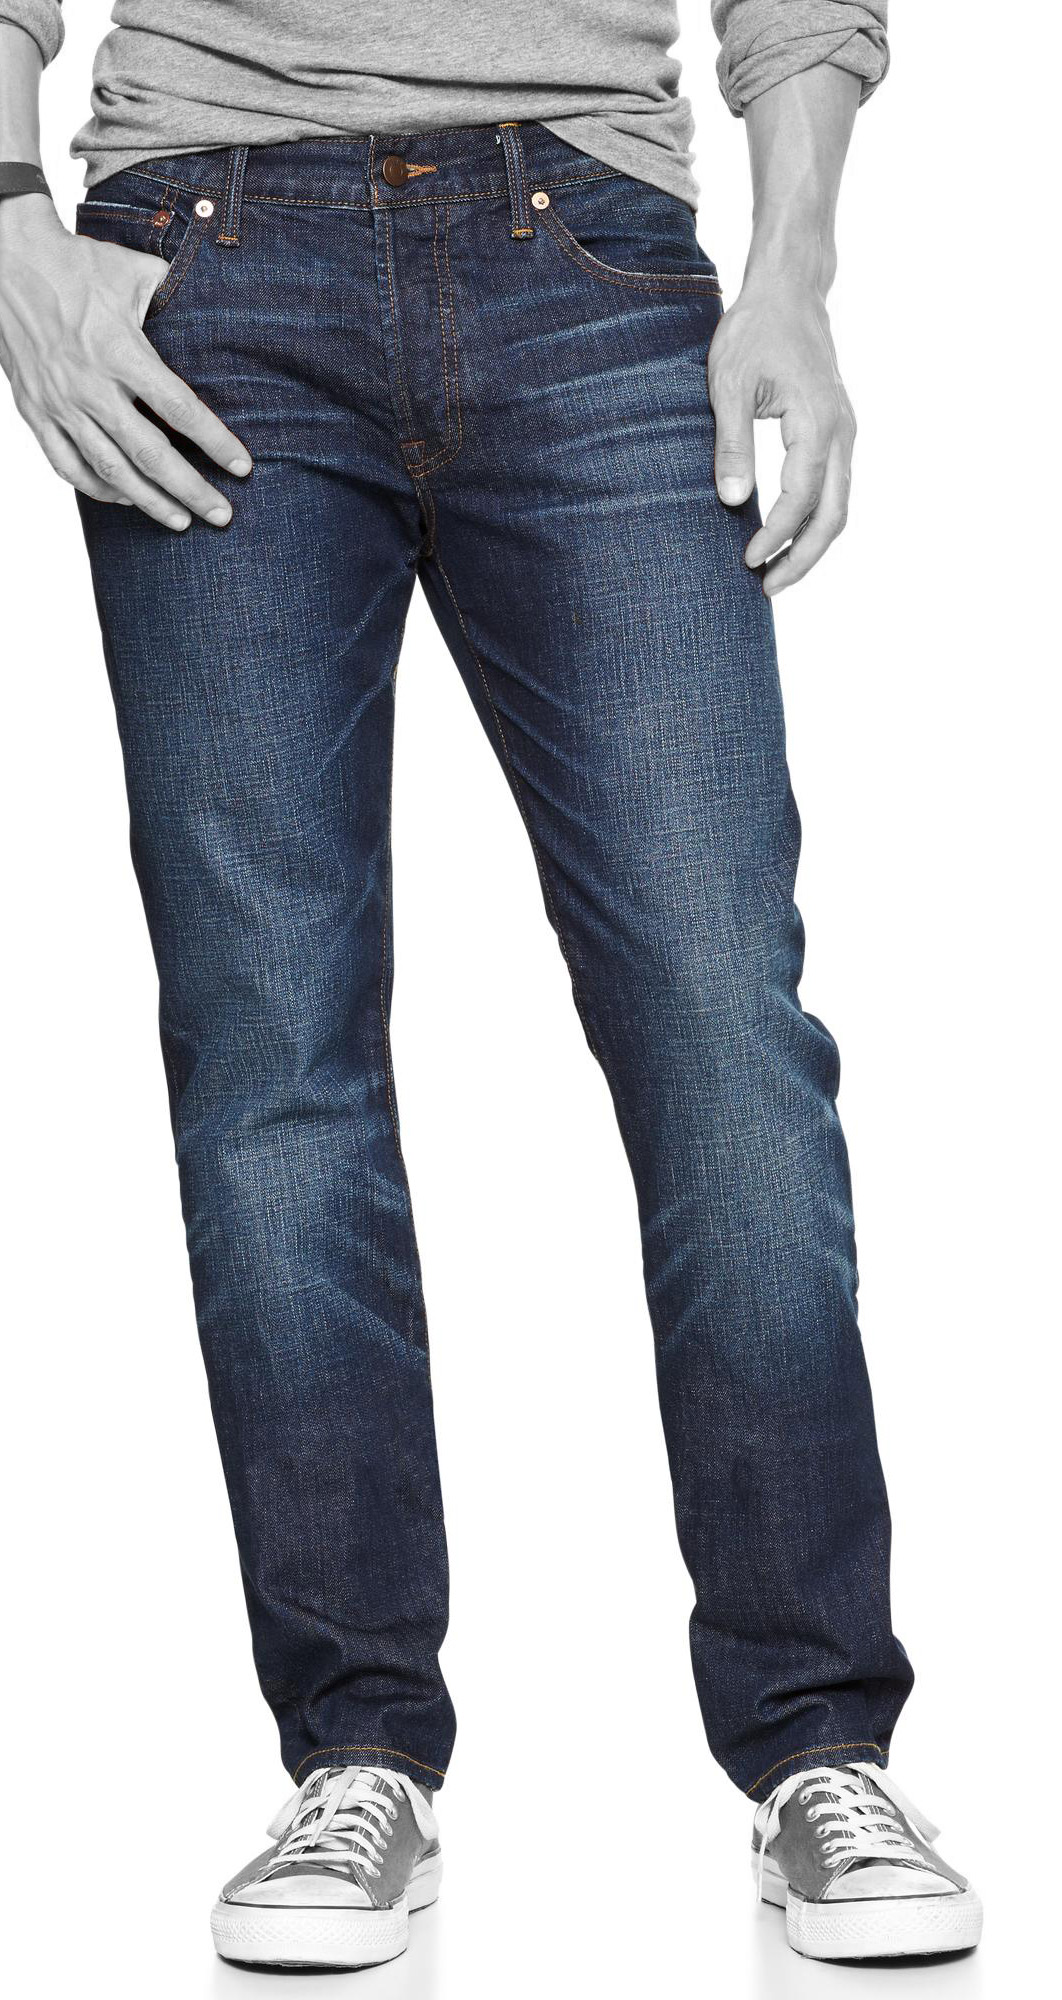 1969 authentic skinny fit jeans (calamity wash)